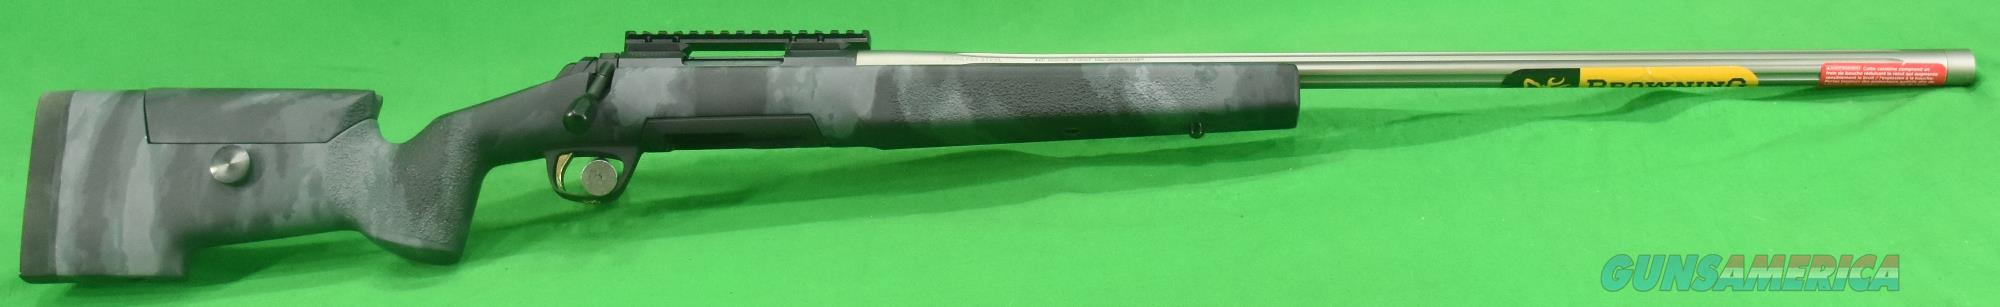 Xbolt Target McMillan A3-5 308Win 28In 035426218  Guns > Rifles > Browning Rifles > Bolt Action > Hunting > Stainless